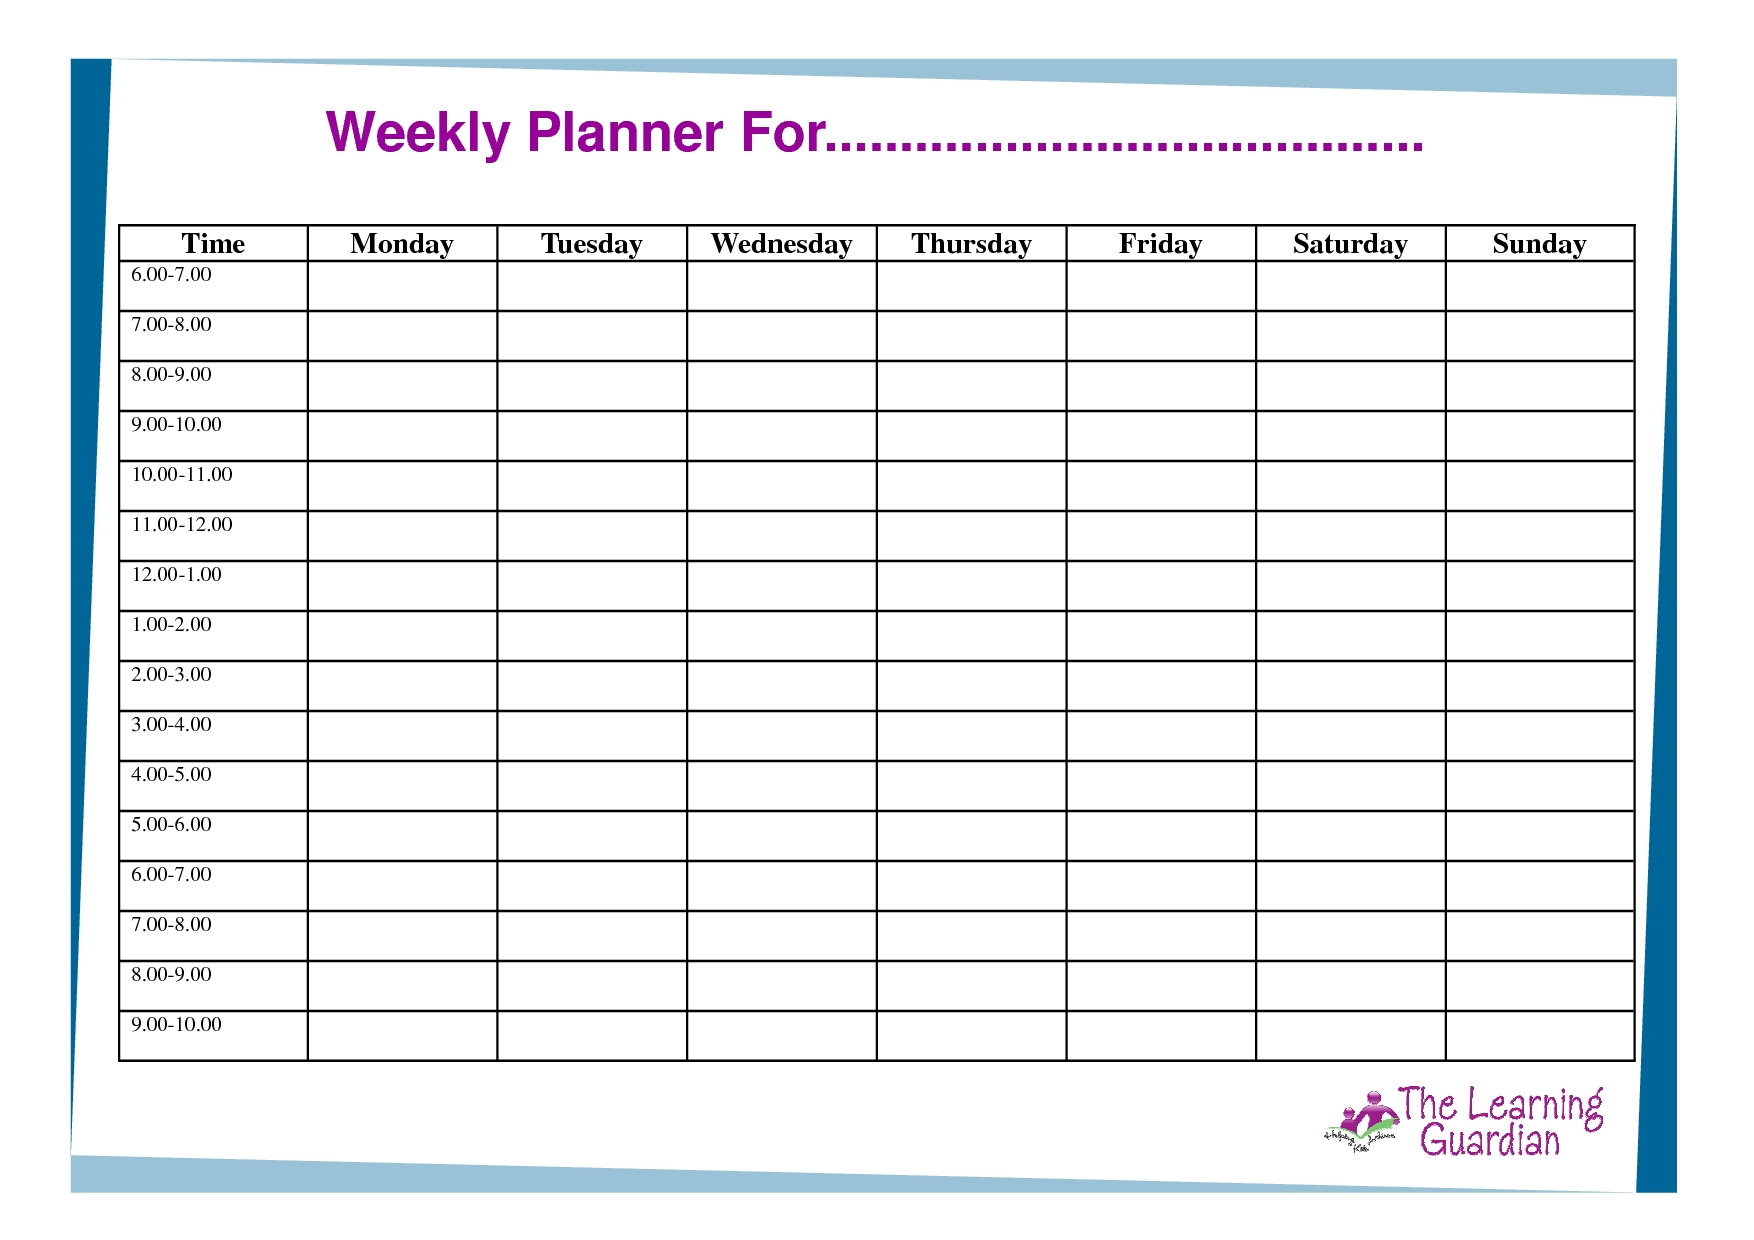 Free Printable Weekly Calendar Templates | Weekly Planner For Time within Blank Weekly Calendar With Times